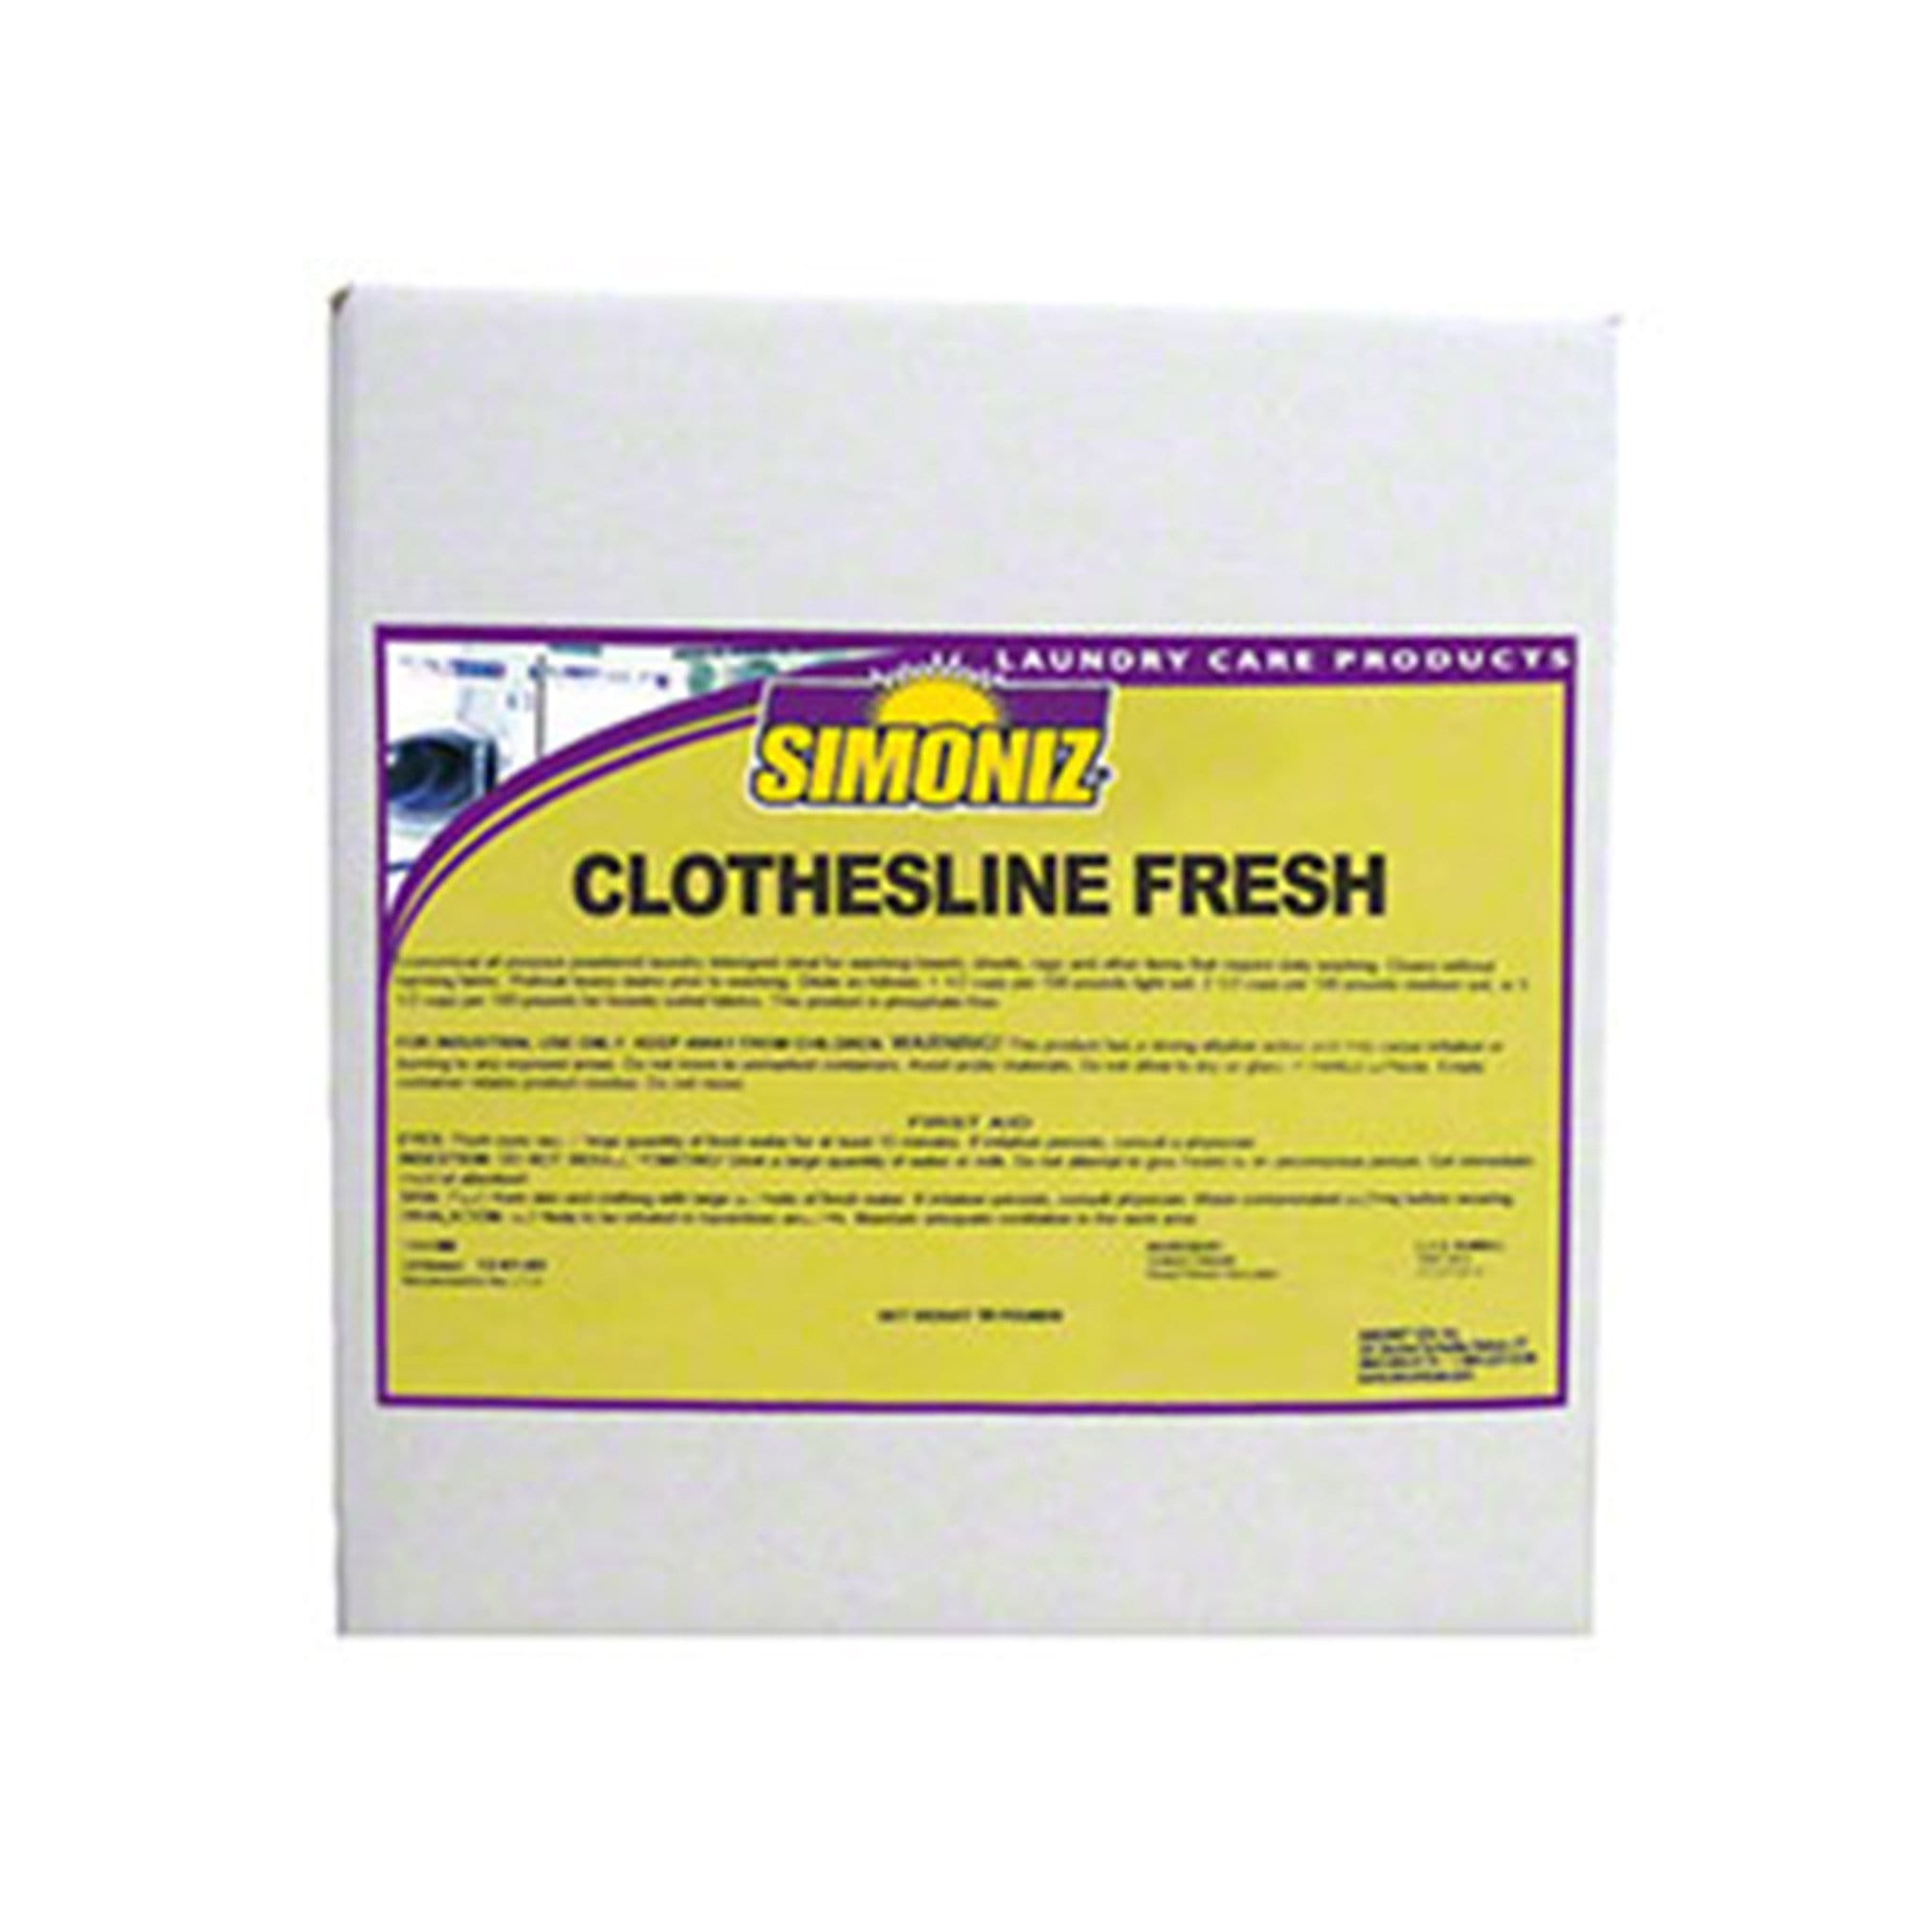 Simoniz Clothesline Fresh Laundry Powder